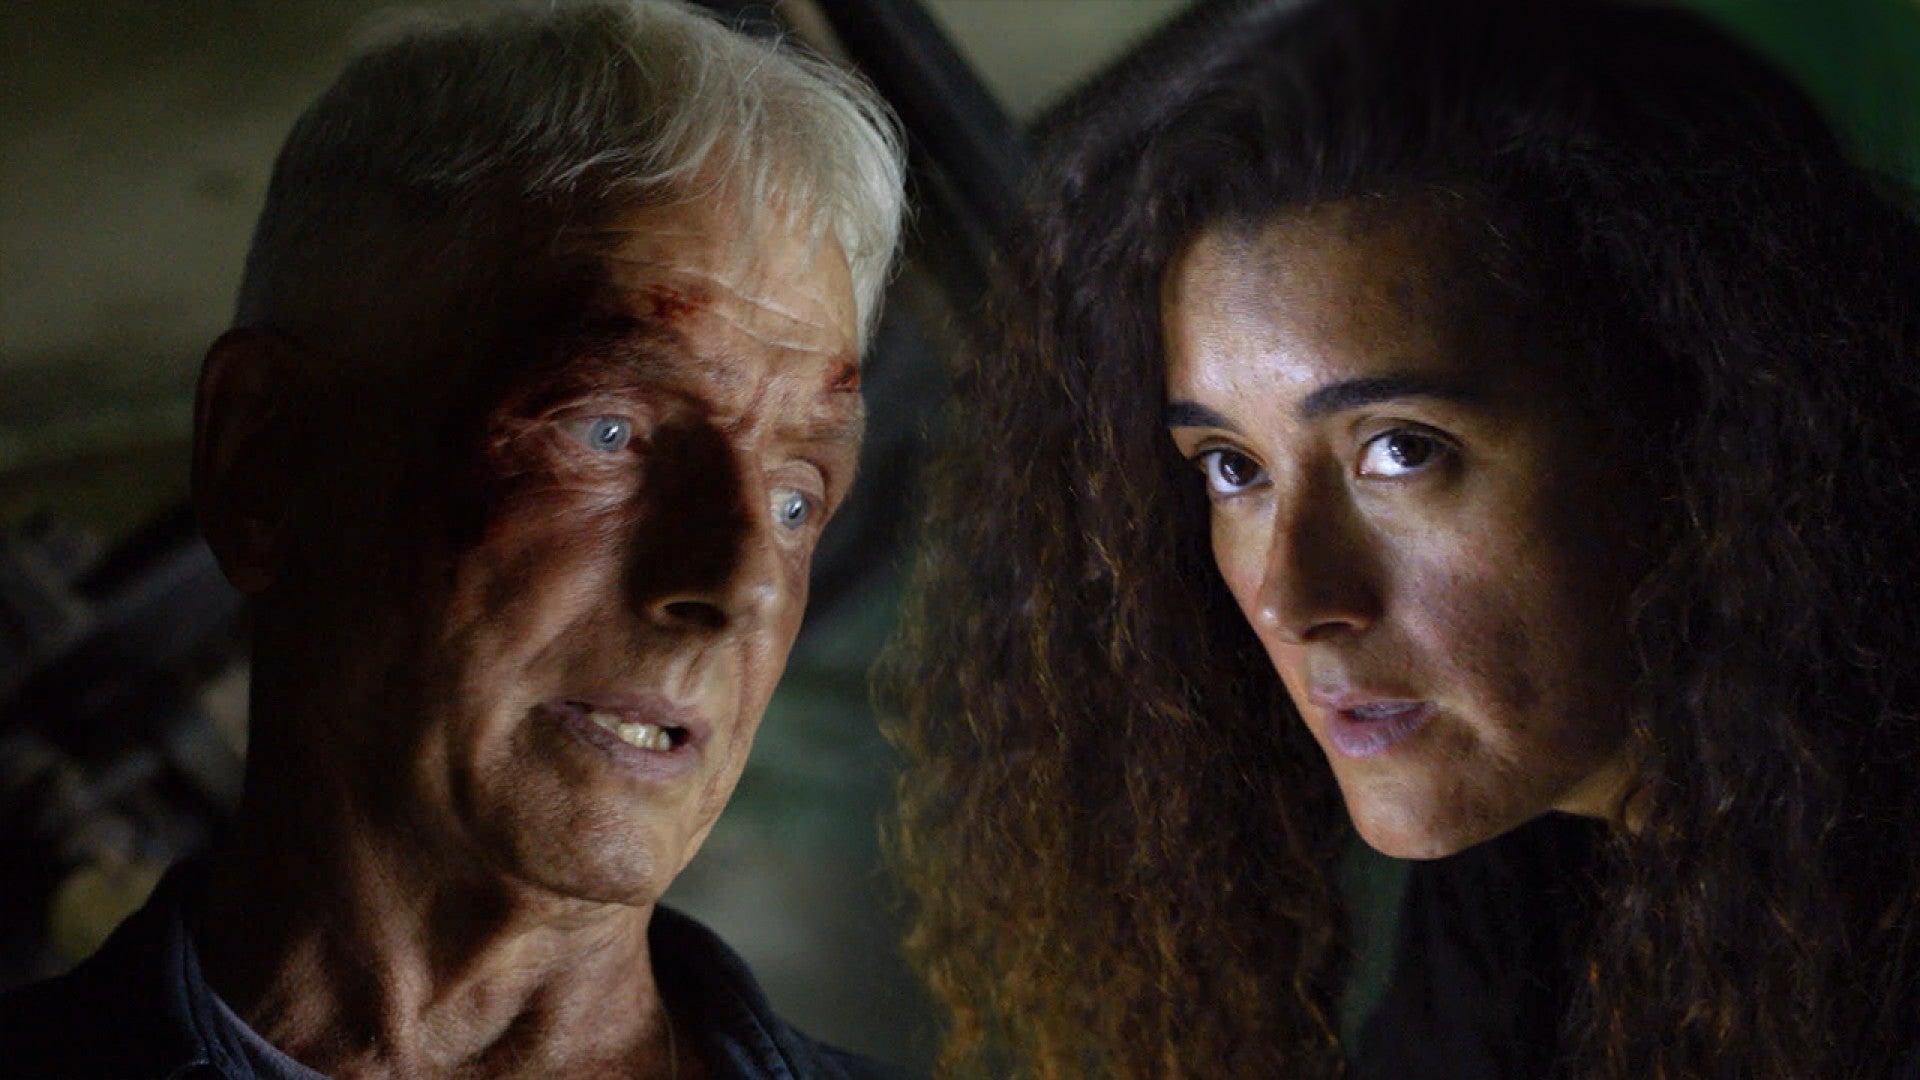 Ncis Season 17 Cote De Pablo Returns In Intense New Footage